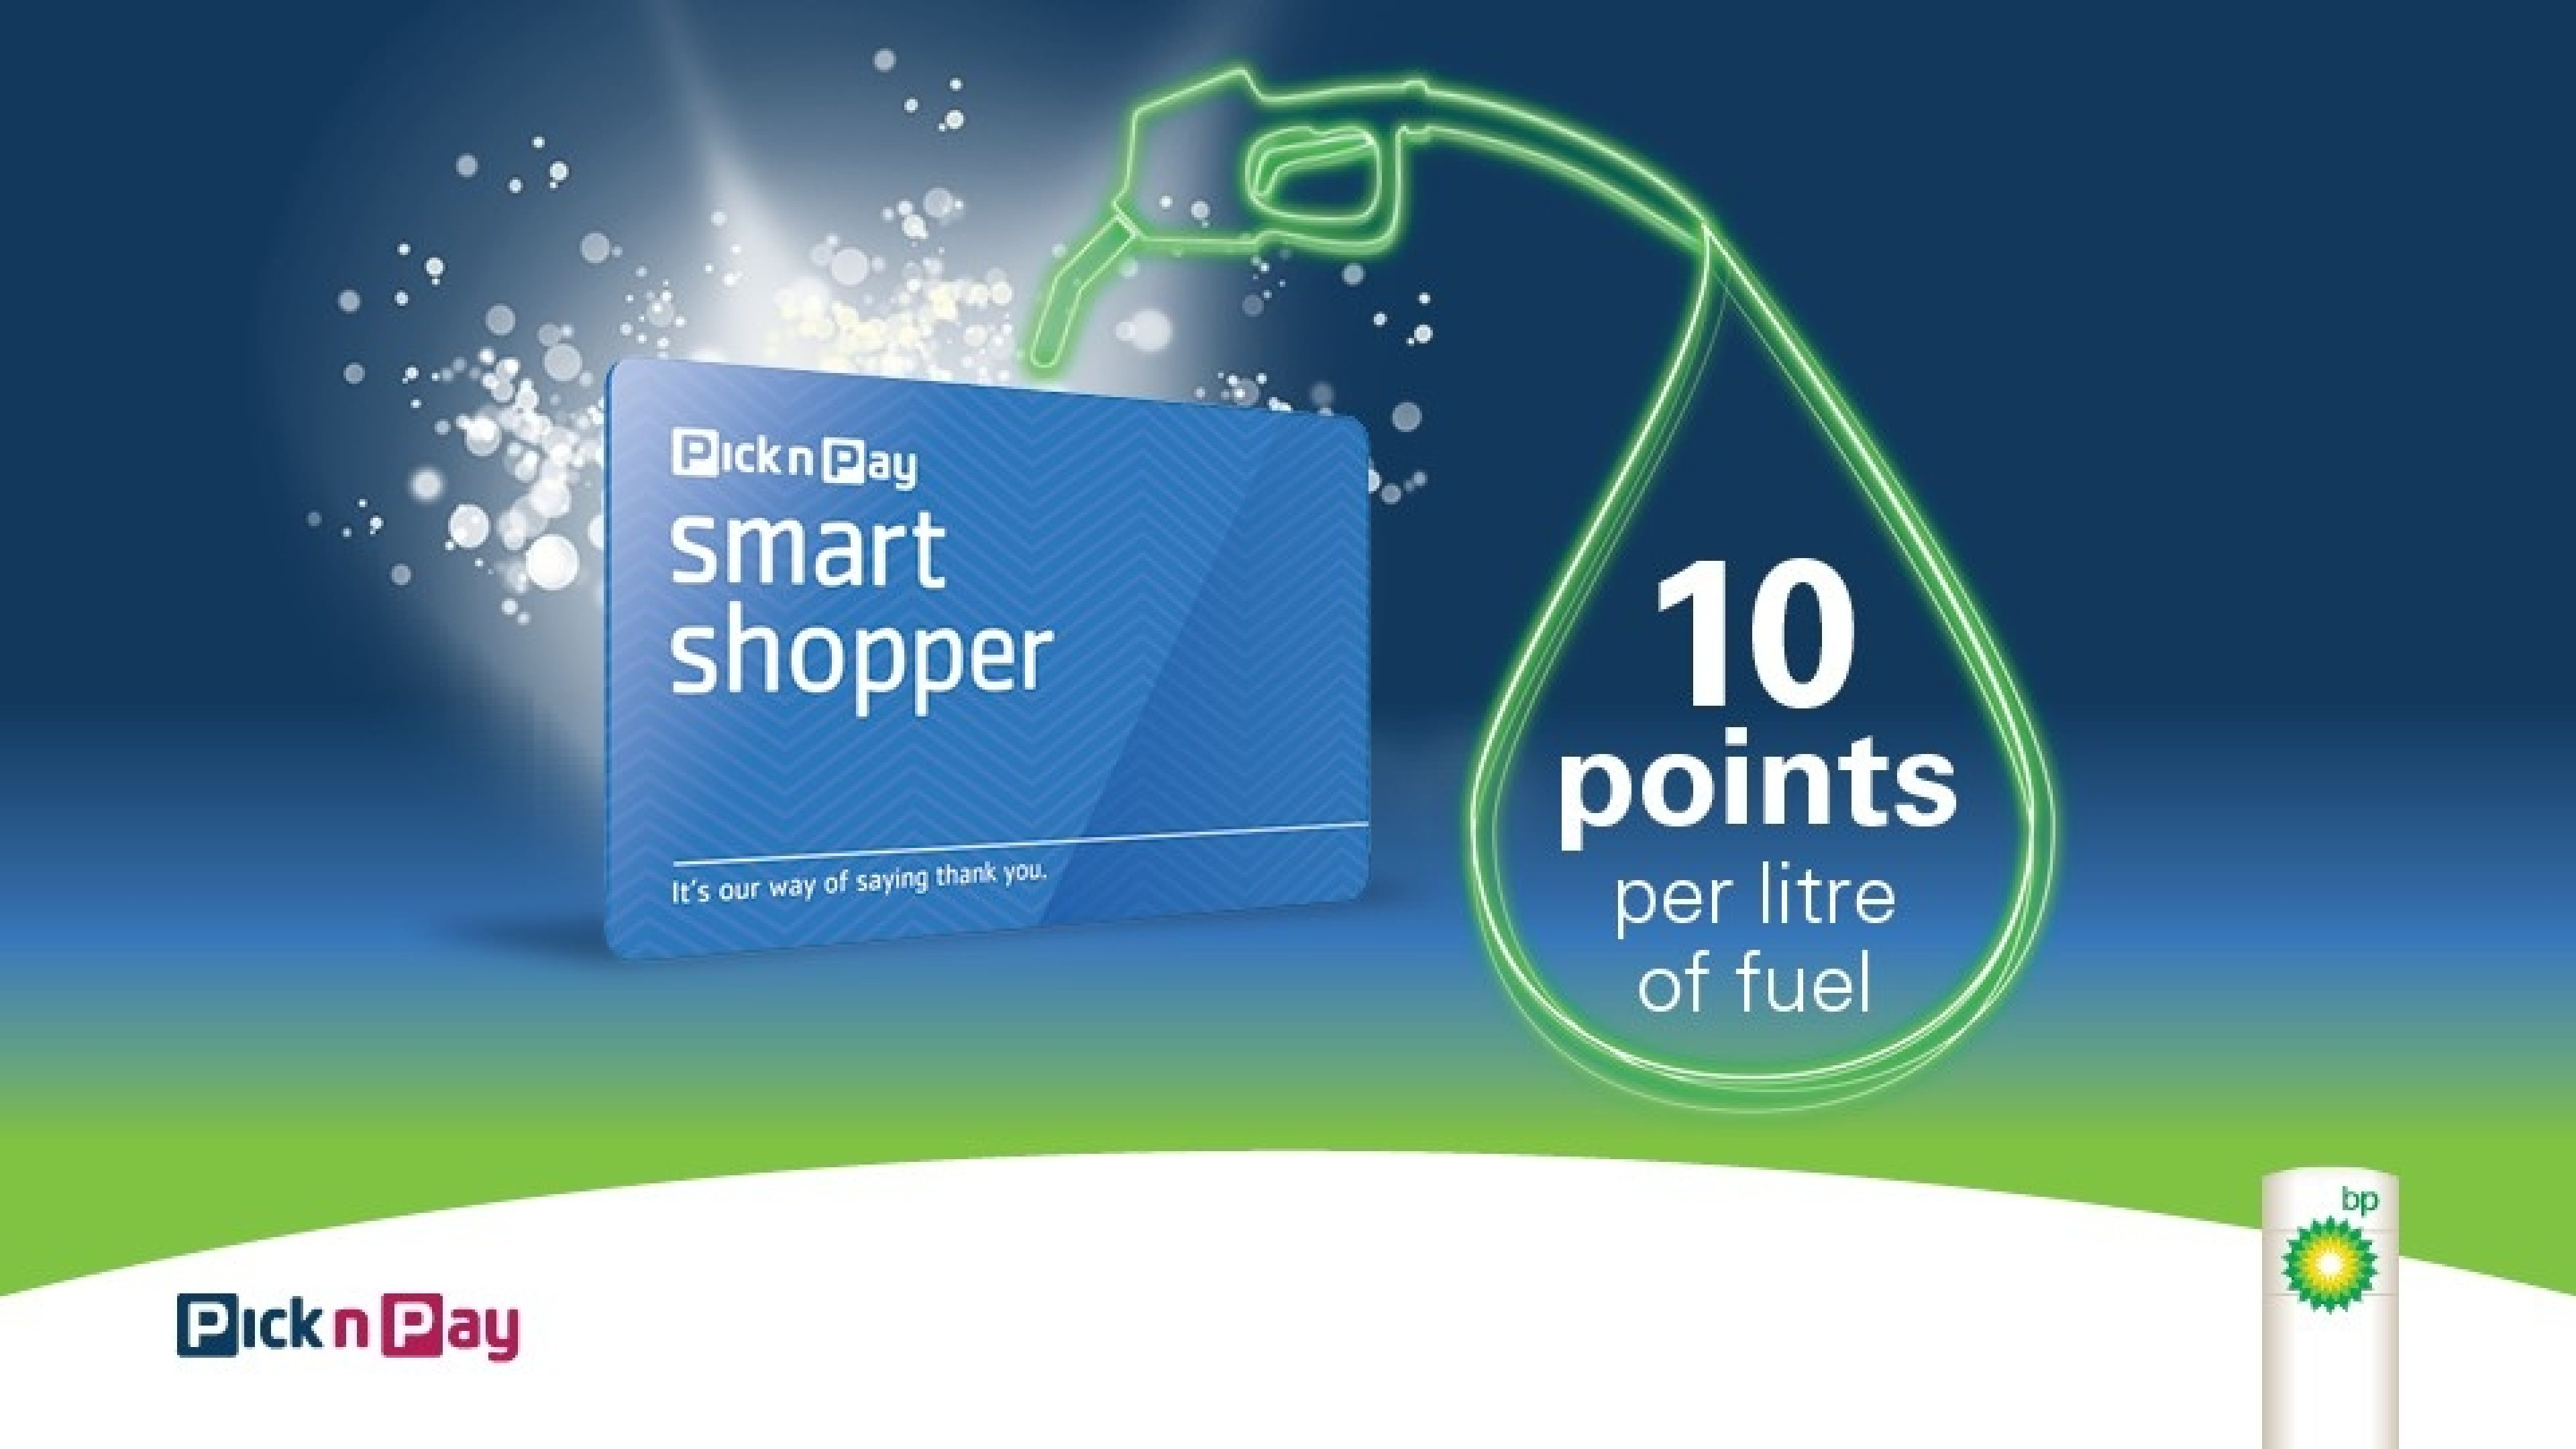 Pump Up Your Smart Shopper Points